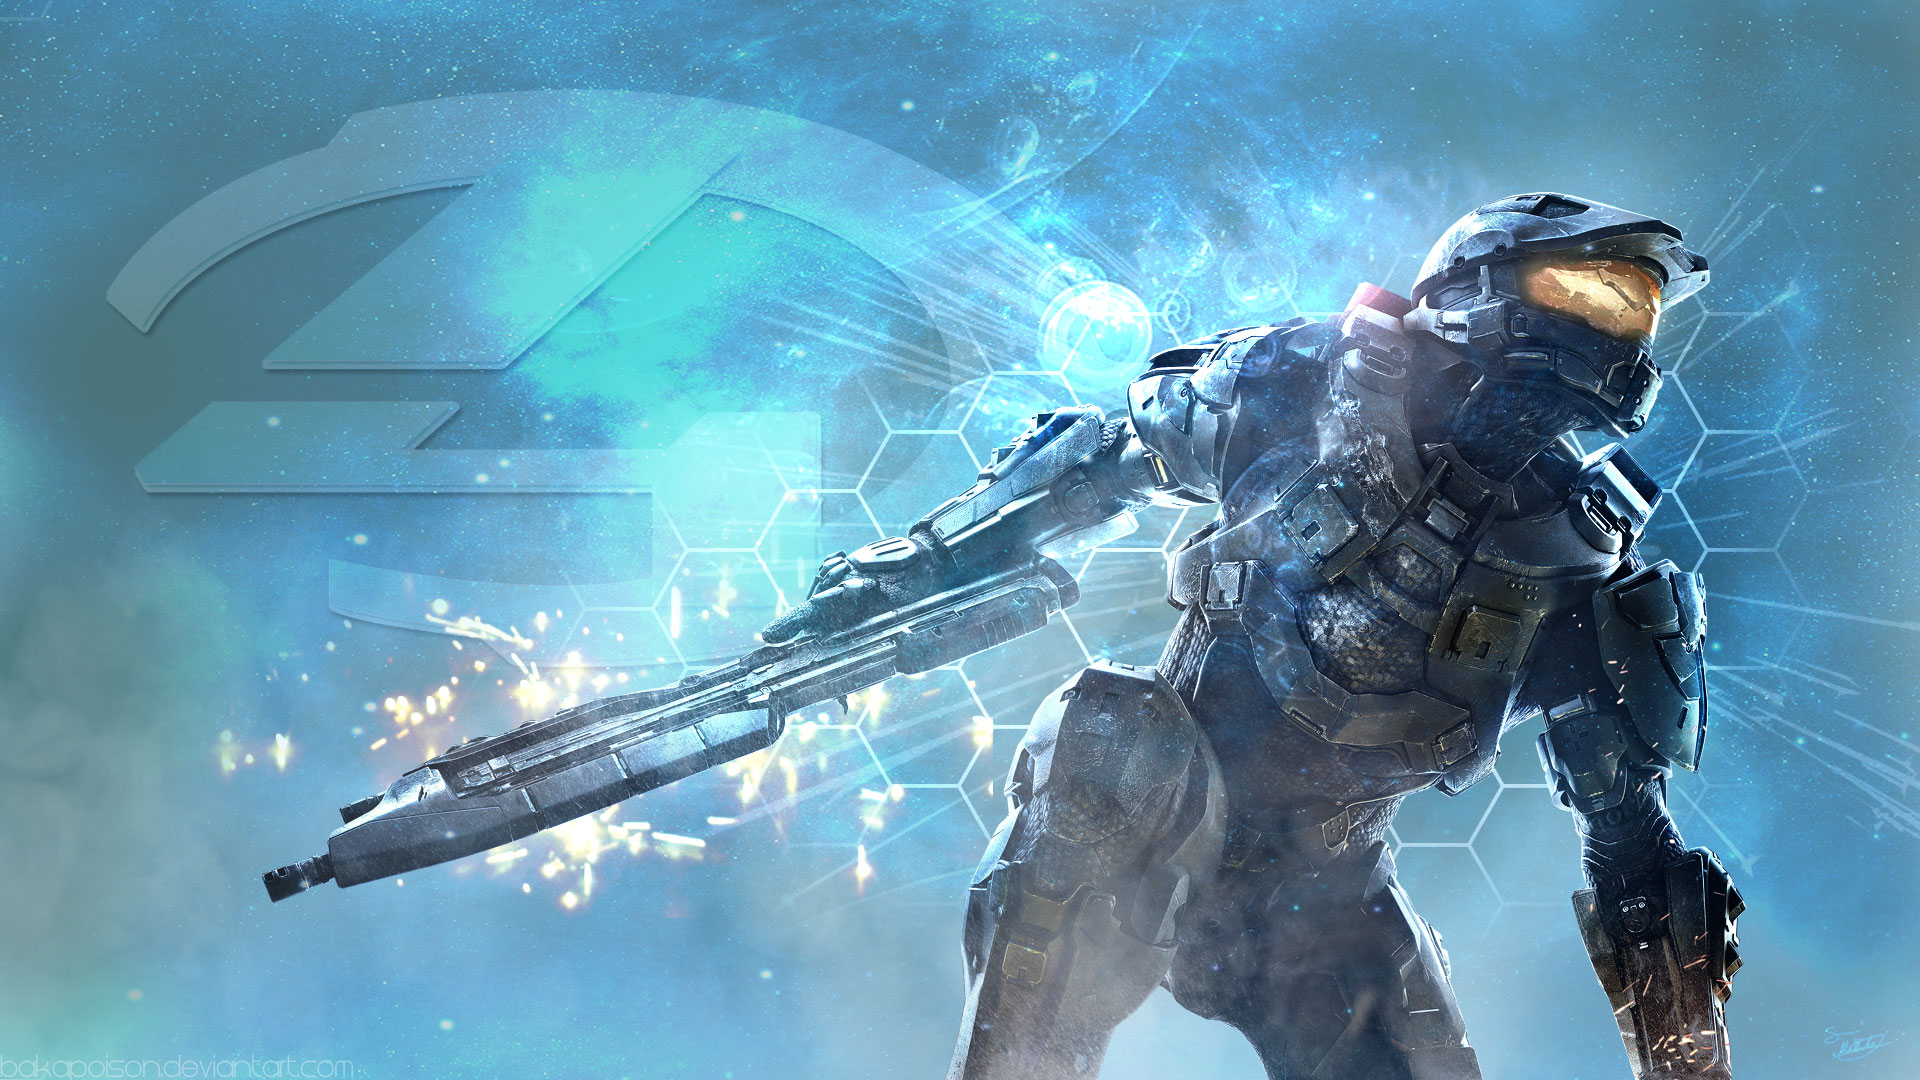 Halo  Wallpapers Wallpaper  1920x1080